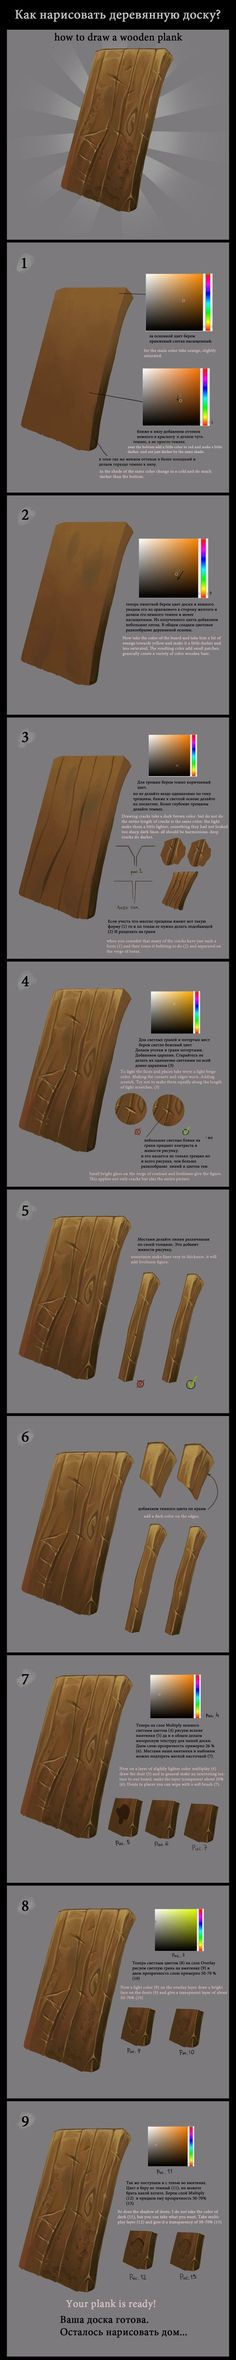 How to draw wooden plank? by Gimaldinov tutorial instructions | NOT OUR ART - Please click artwork for source | WRITING INSPIRATION for Dungeons and Dragons DND Pathfinder PFRPG Warhammer 40k Star Wars Shadowrun Call of Cthulhu and other d20 roleplaying fantasy science fiction scifi horror location equipment monster character game design | Create your own RPG Books w/ www.rpgbard.com